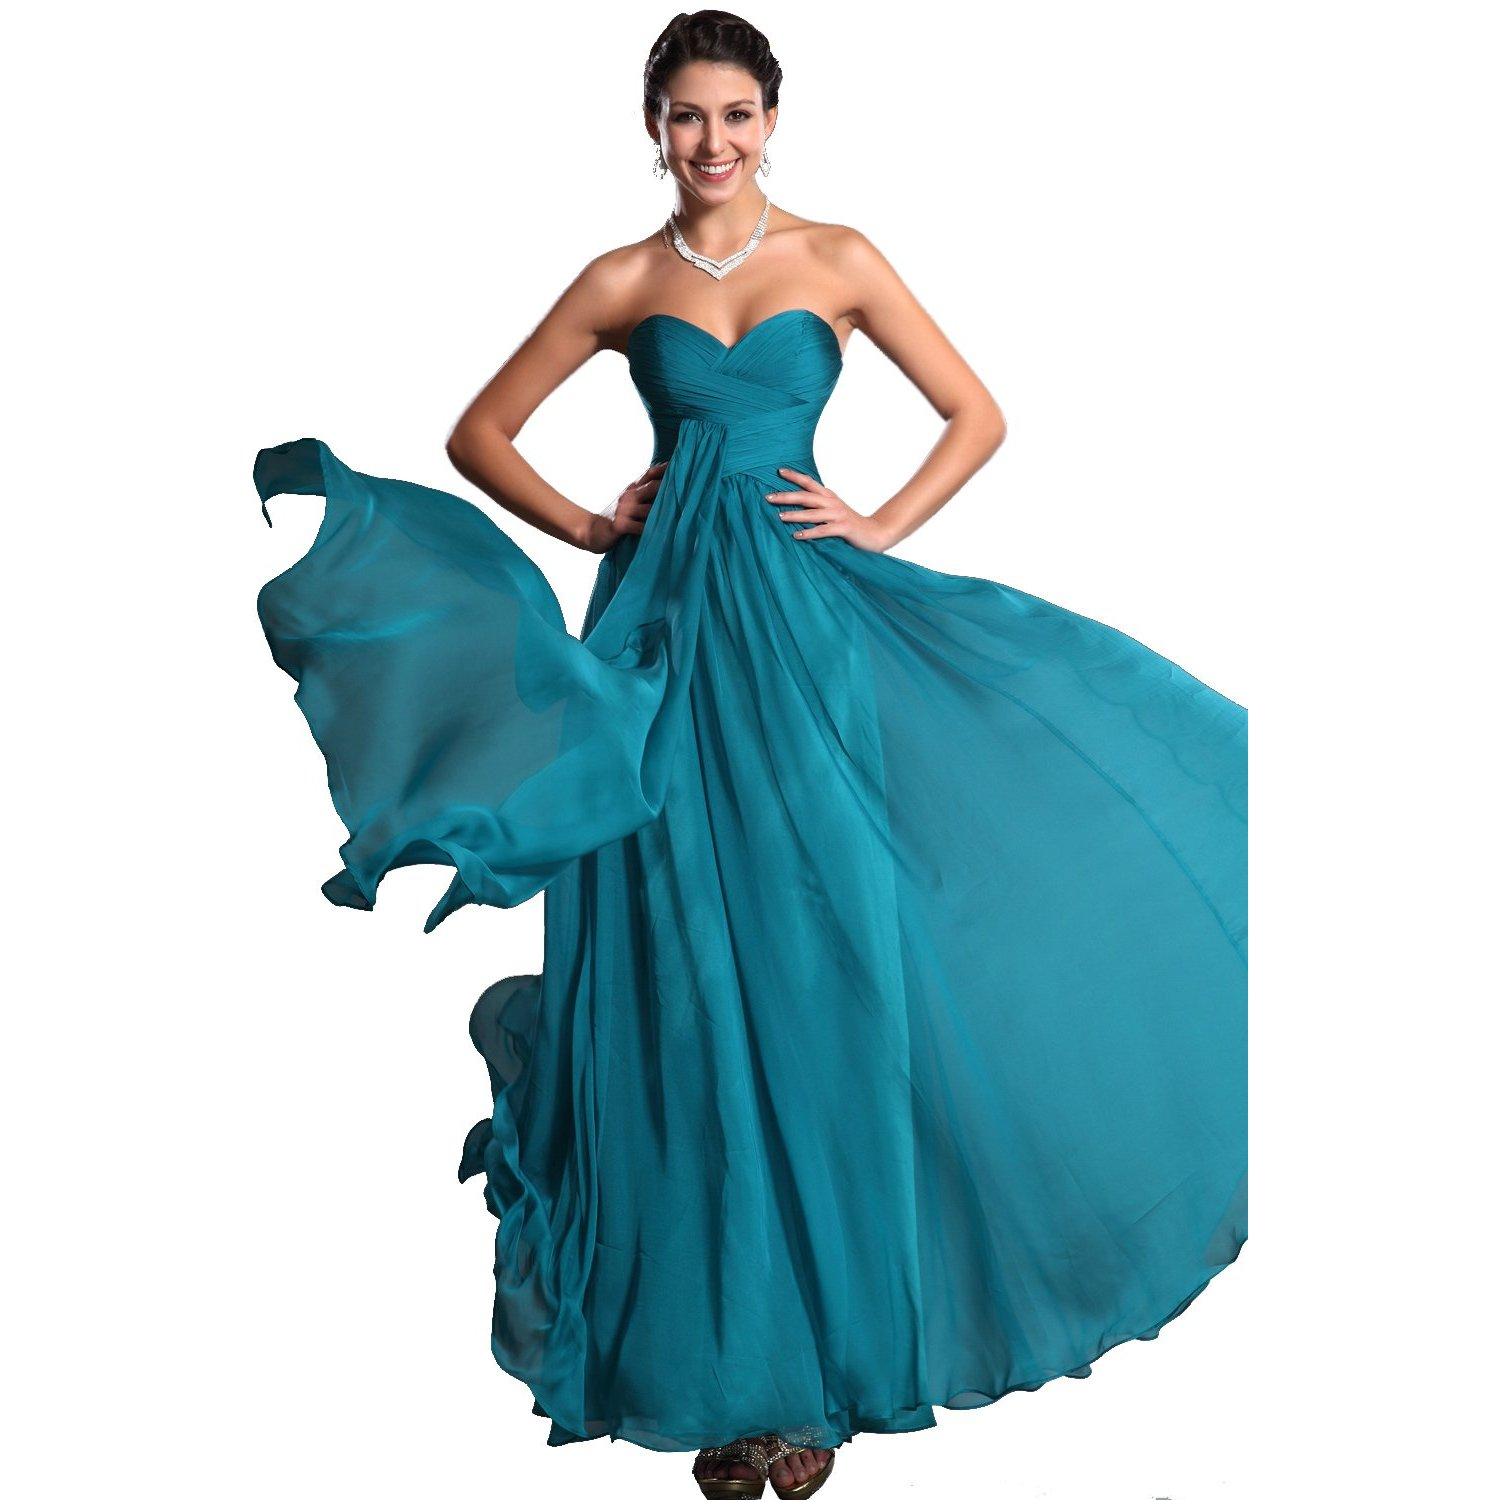 Robe bustier turquoise longue